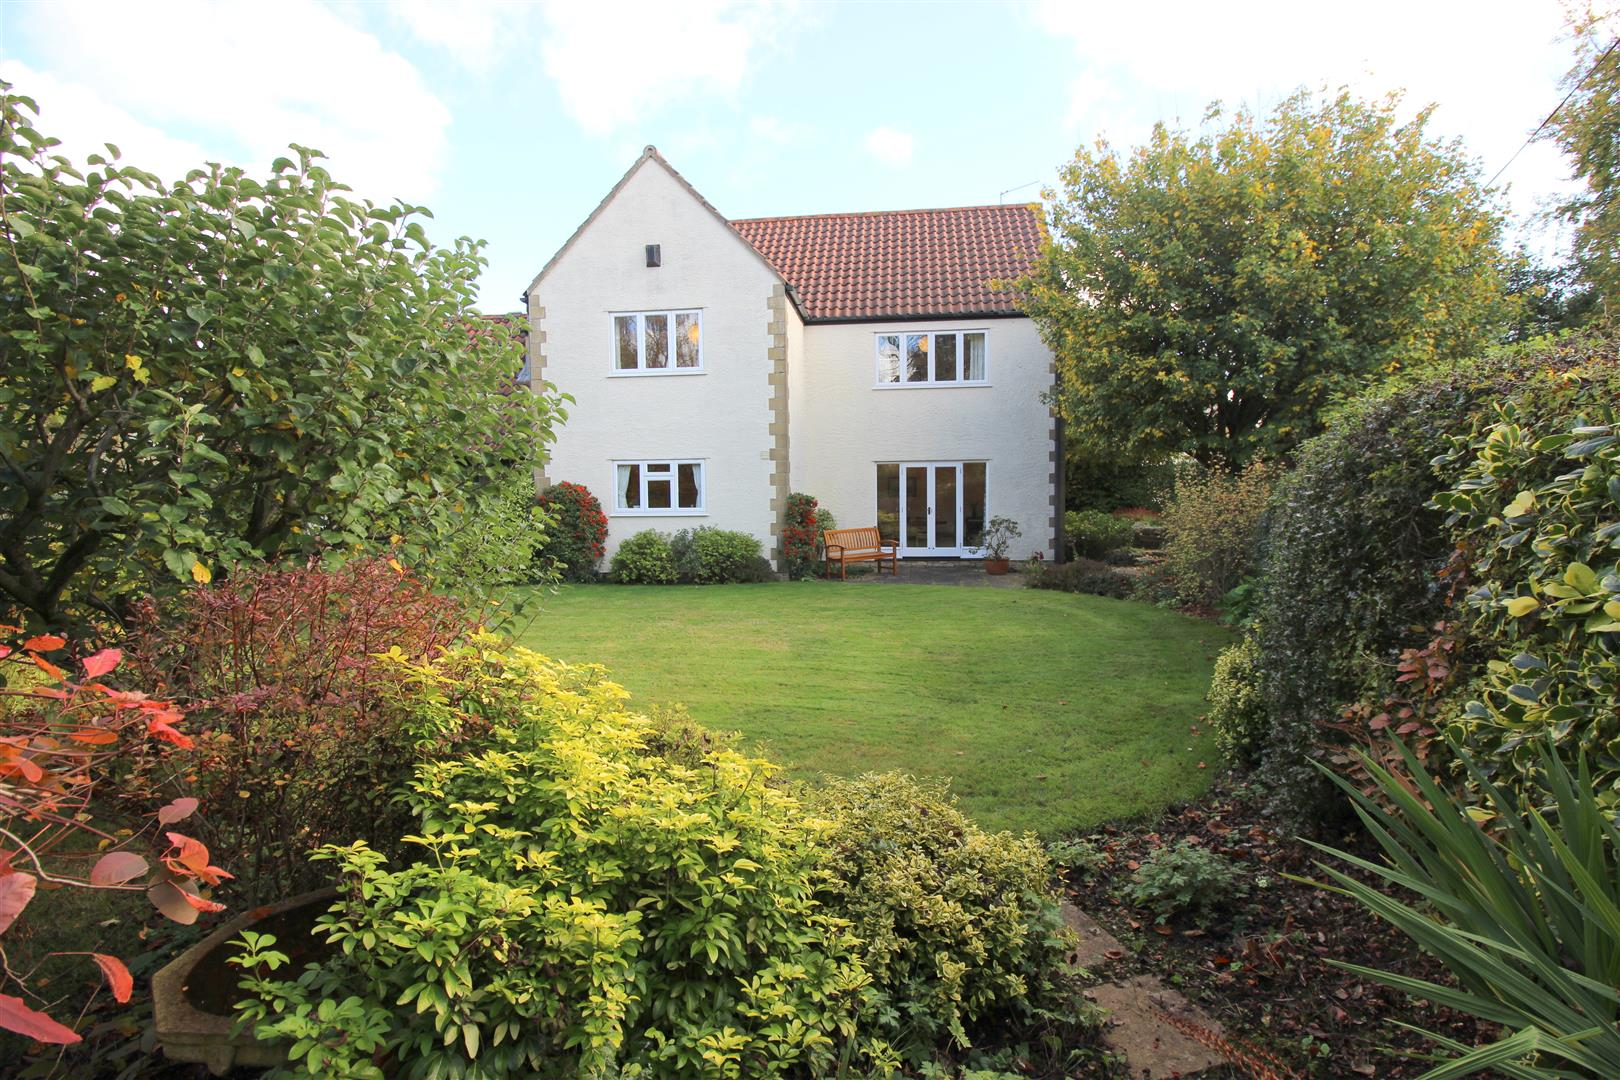 5 Bedrooms Detached House for sale in Fairleigh Rise, Kington Langley